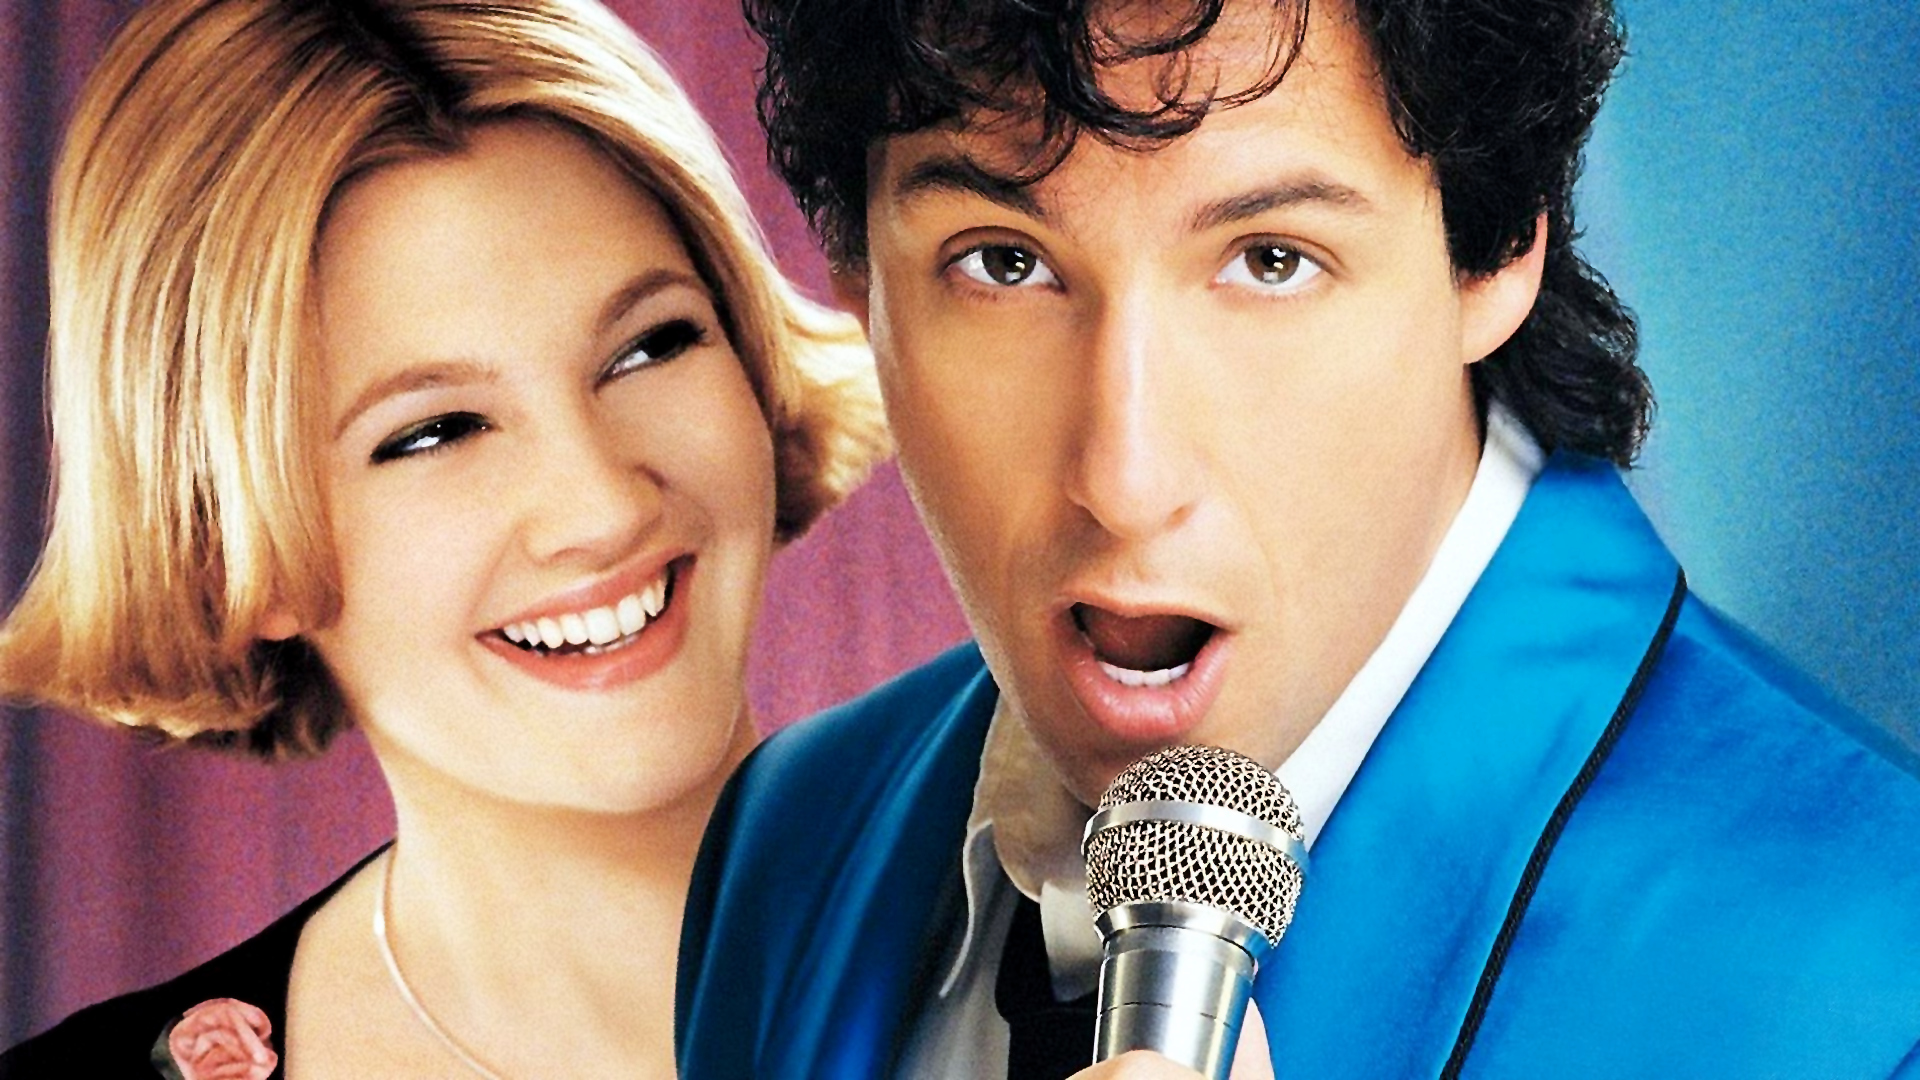 How Adam Sandler S The Wedding Singer Became The Ultimate Love Letter To The 80s